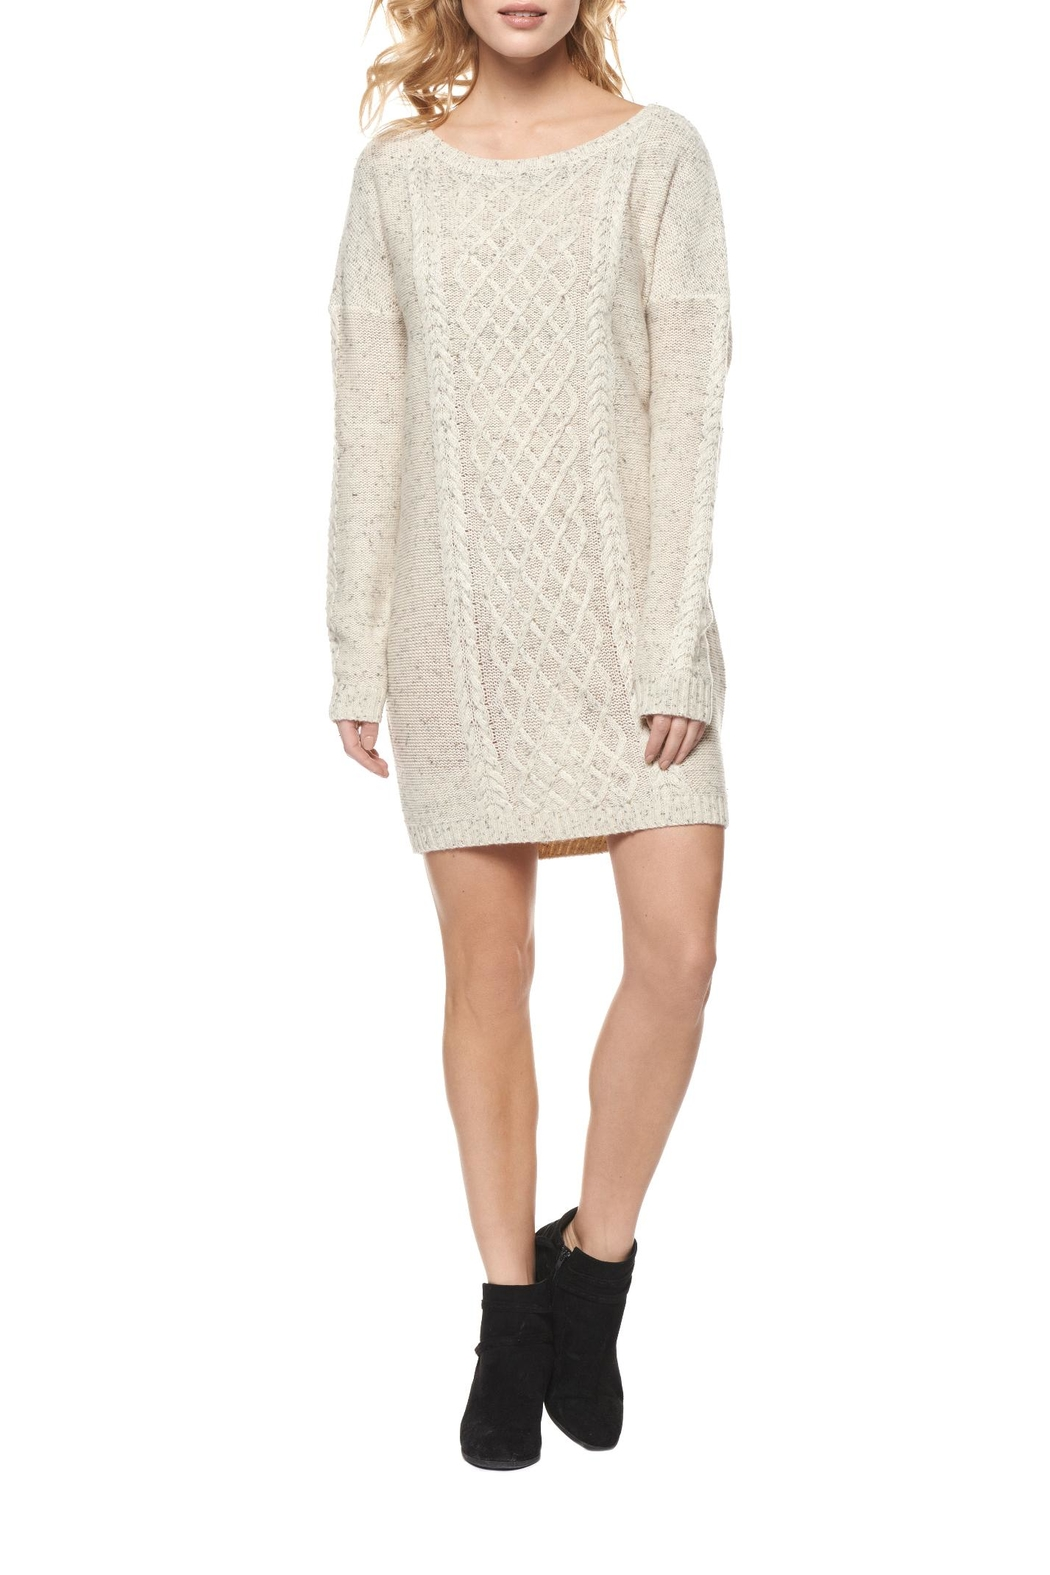 Dex Speckled Sweater Dress - Main Image